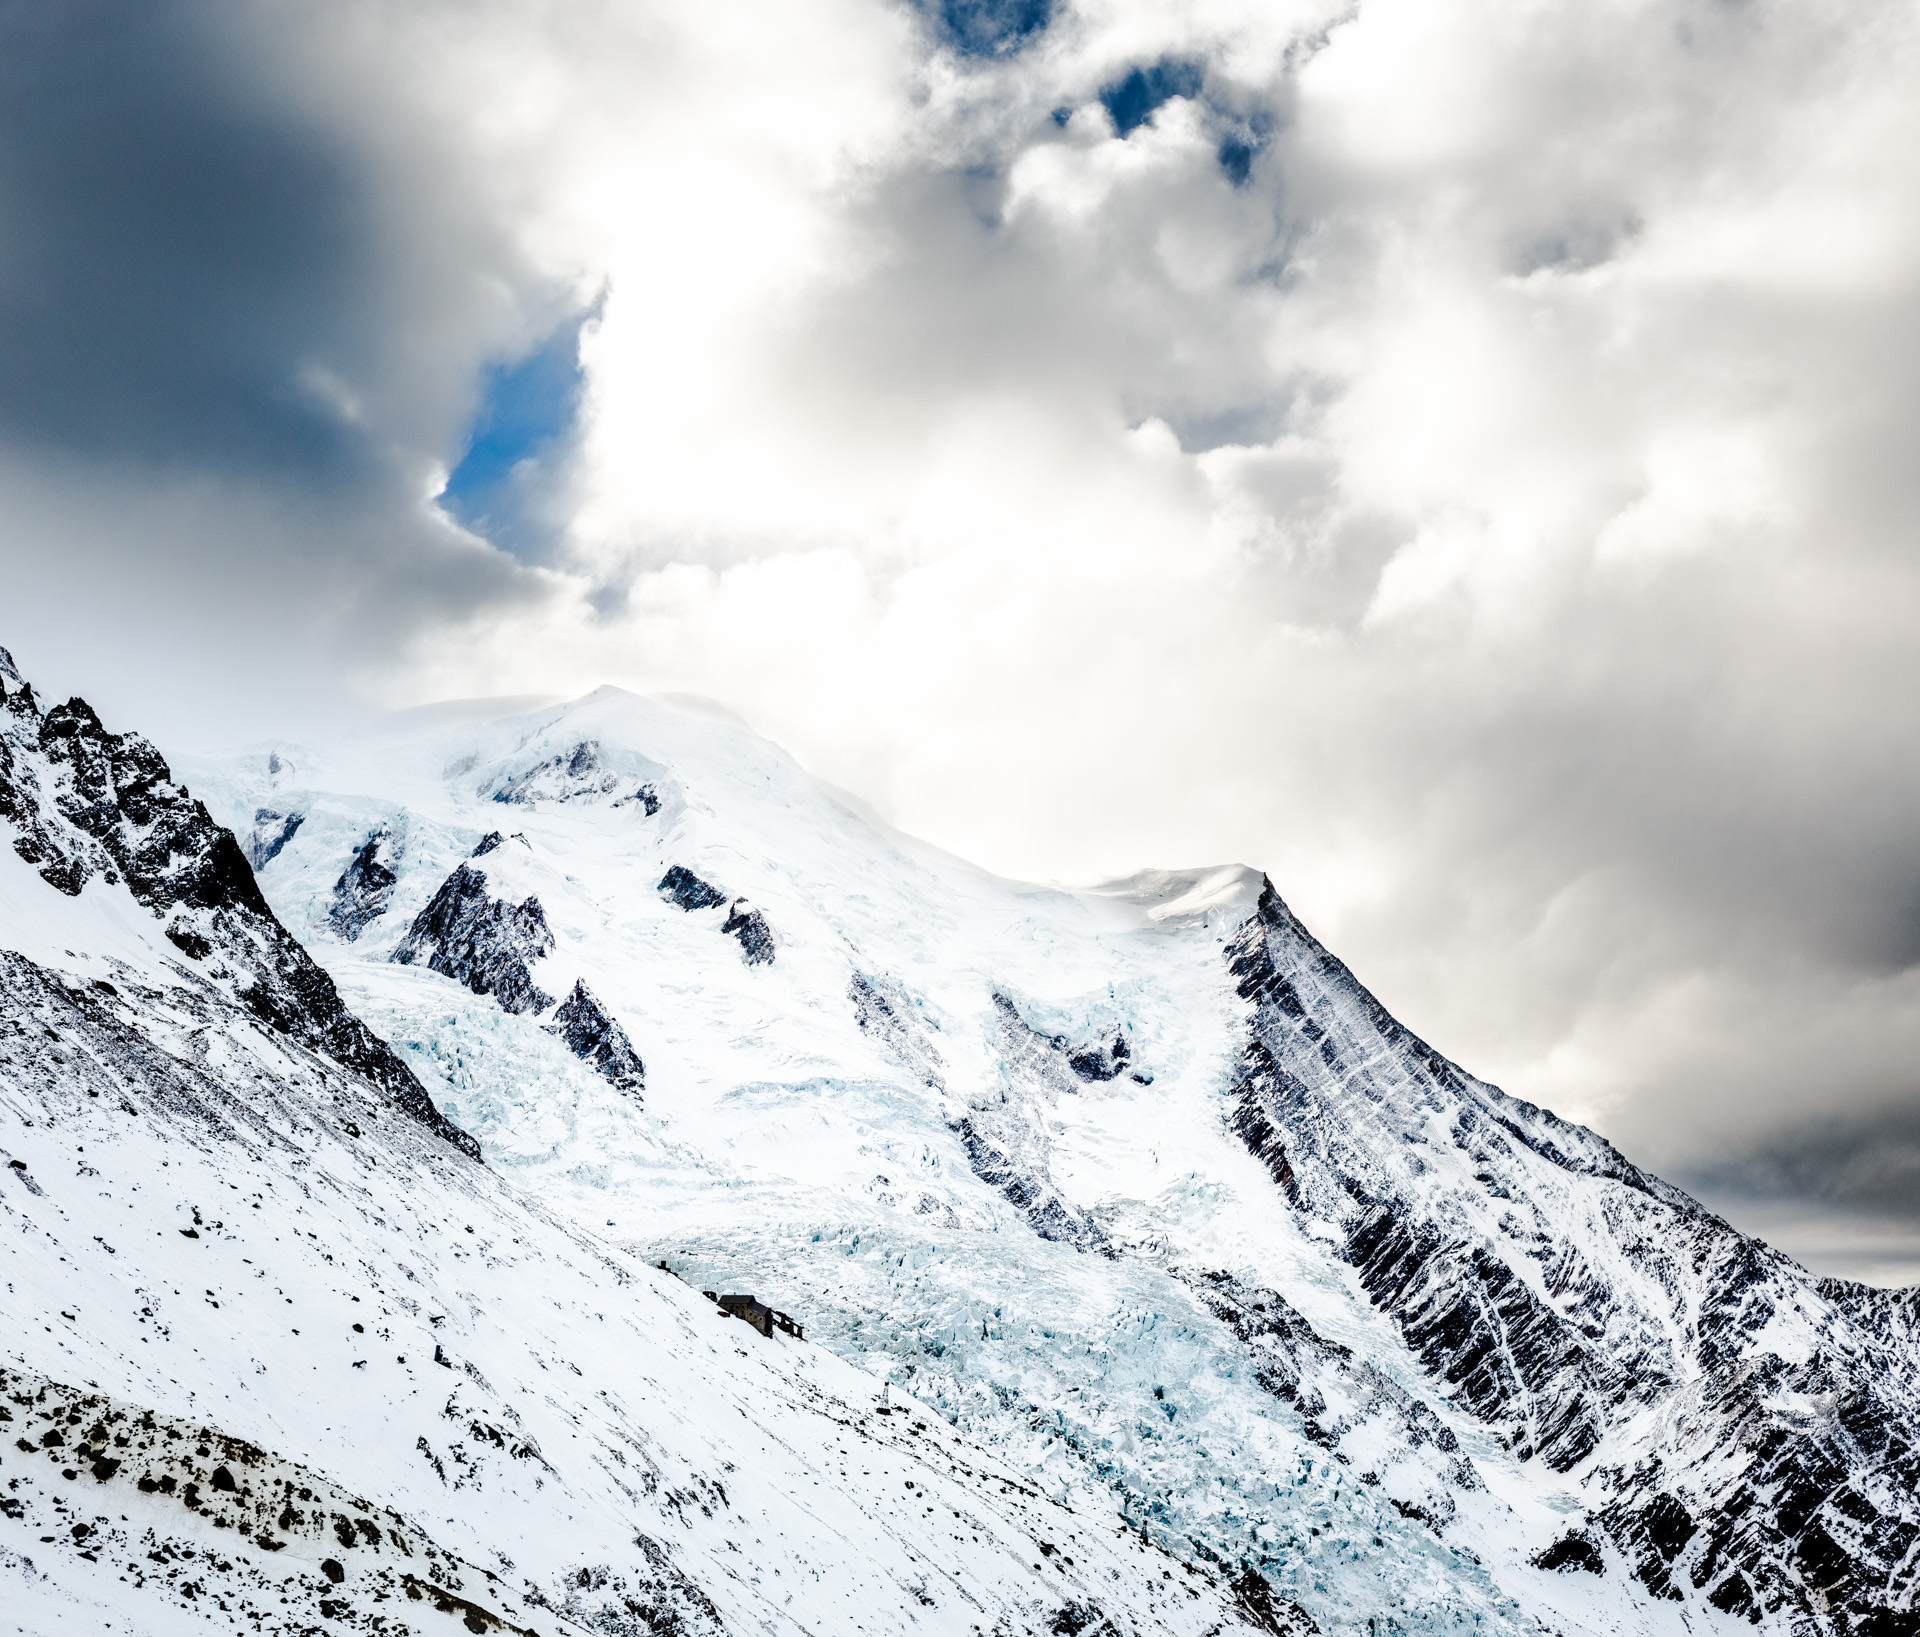 From left-to-right: Mont Blanc (hidden in cloud),Dome du Gouter (just visible) and Aiguille du Gouter.